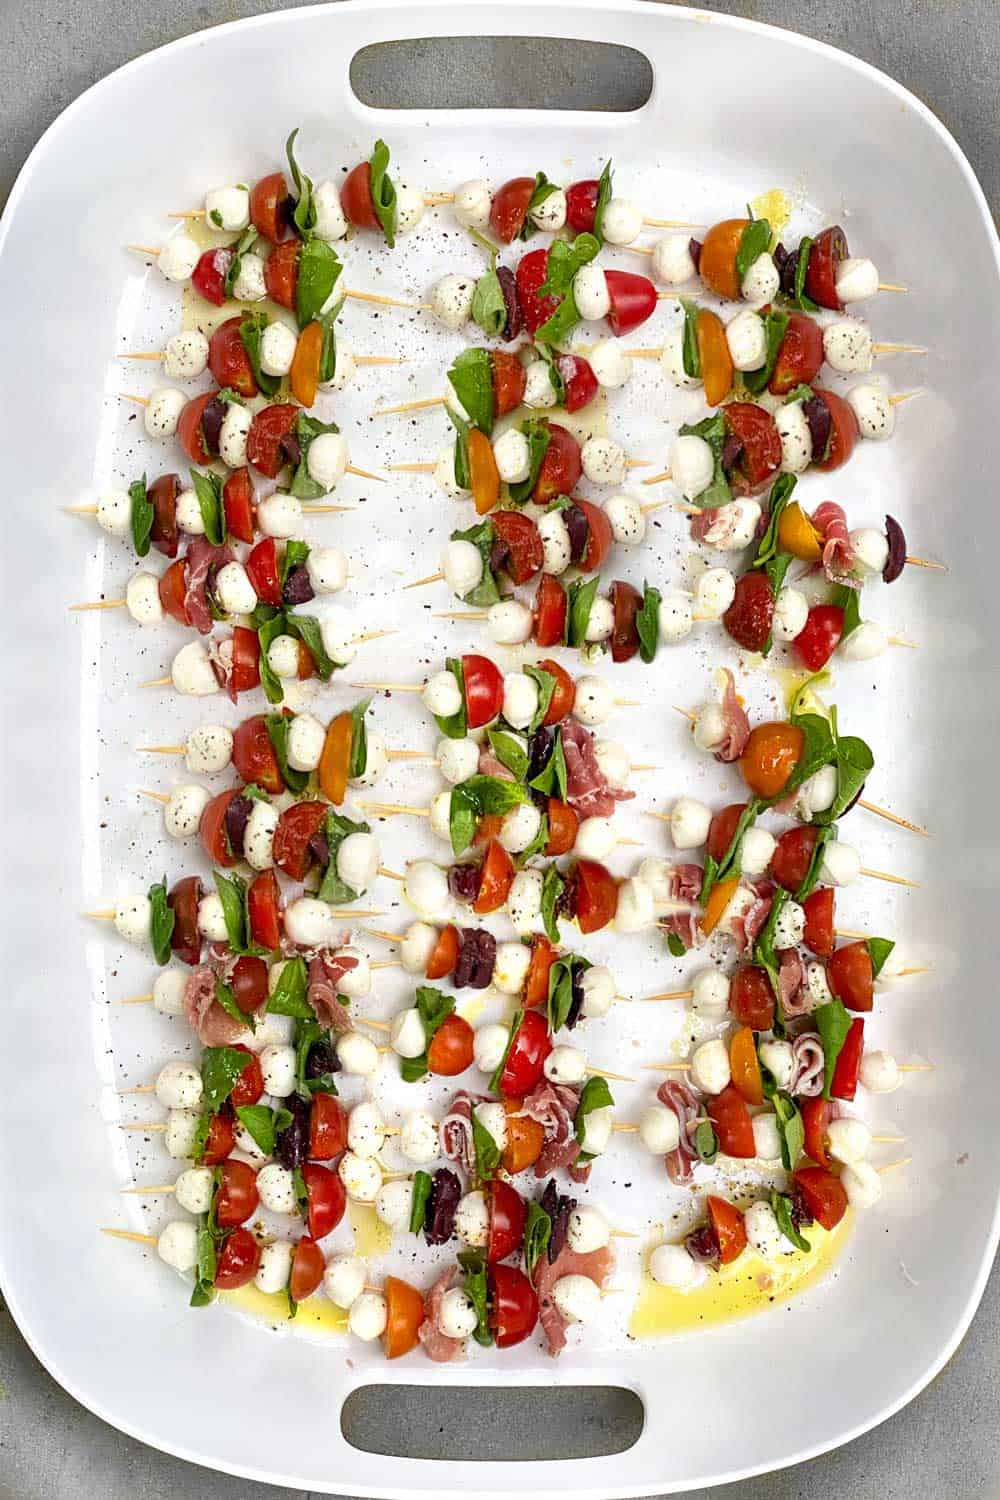 3 dozen mini caprese skewers on a white tray, with tomatoes, basil leaves and mini mozzarella balls